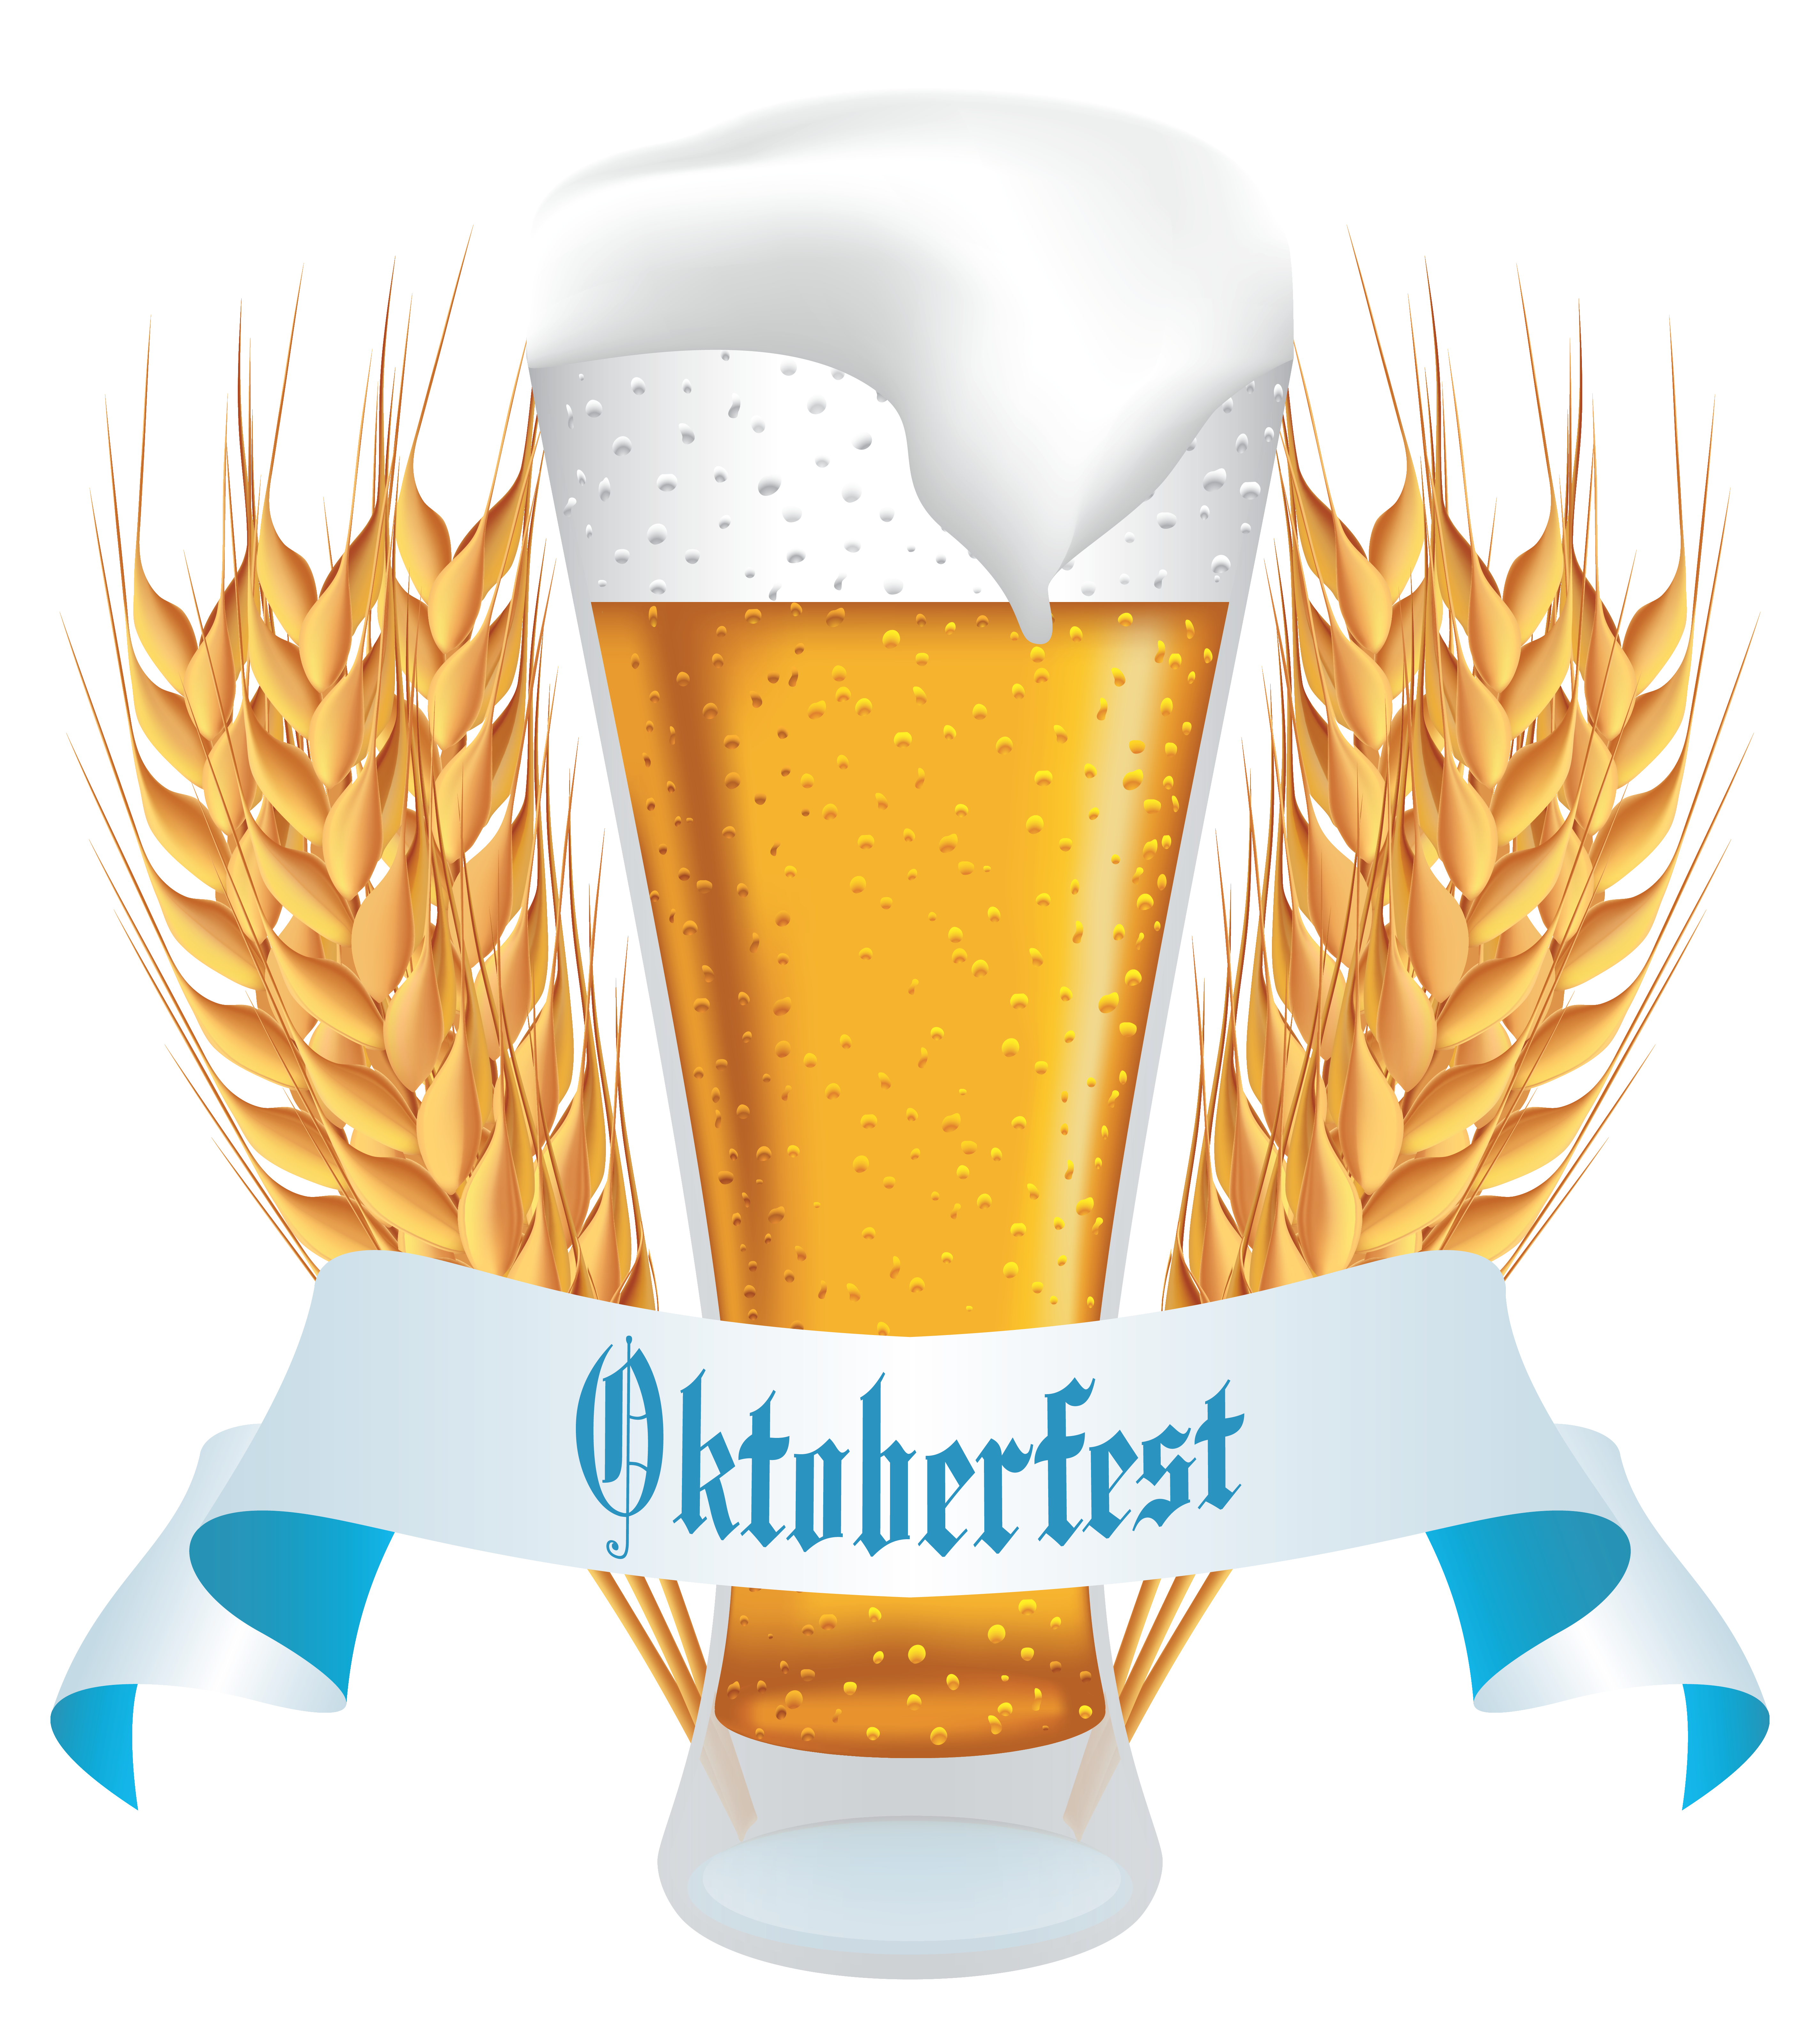 Oktoberfest with banner png. Wheat clipart beer wheat